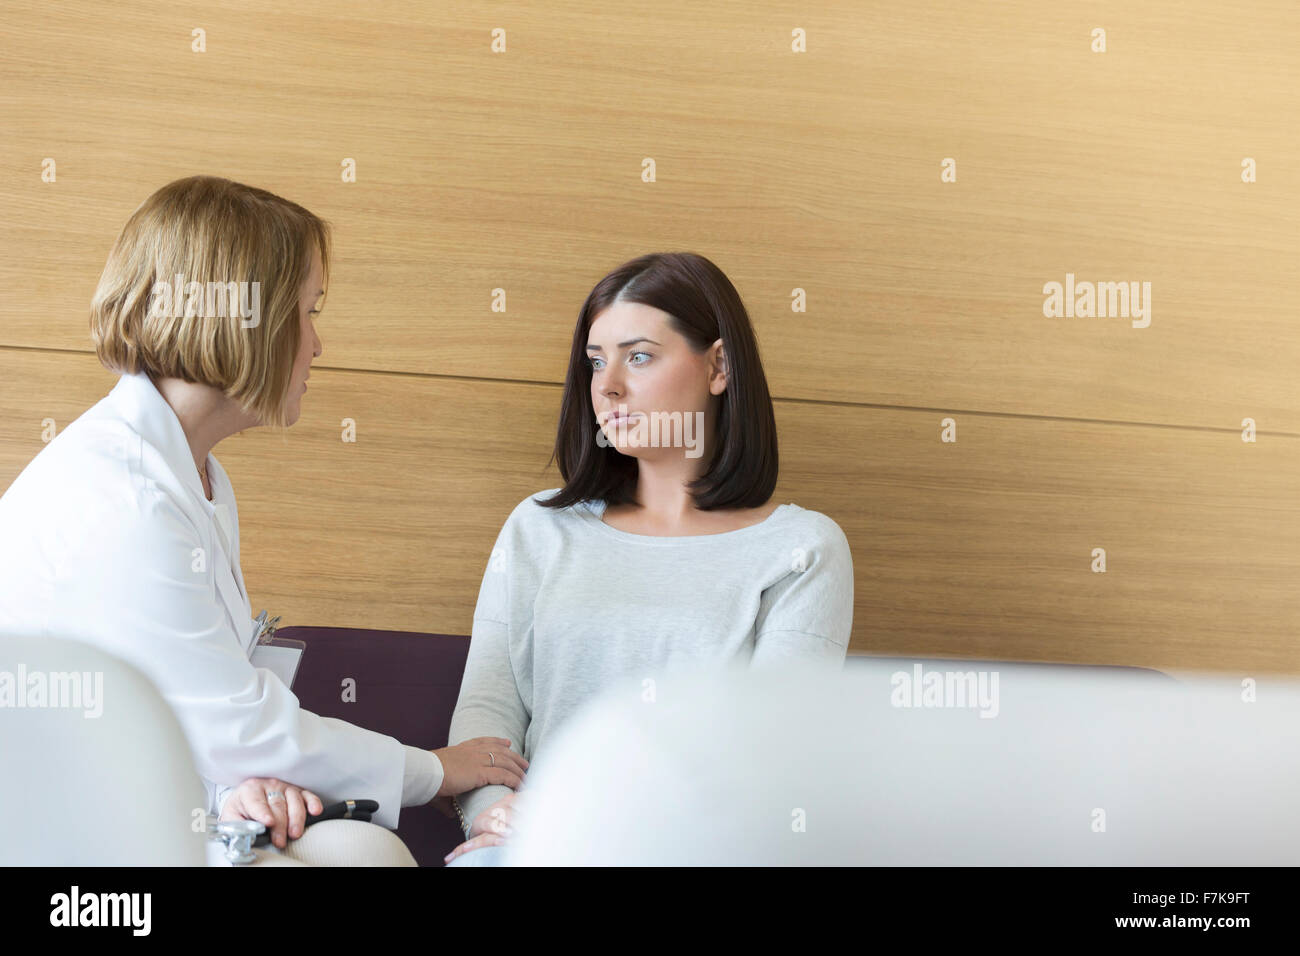 Doctor consoling serious patient in clinic lobby - Stock Image